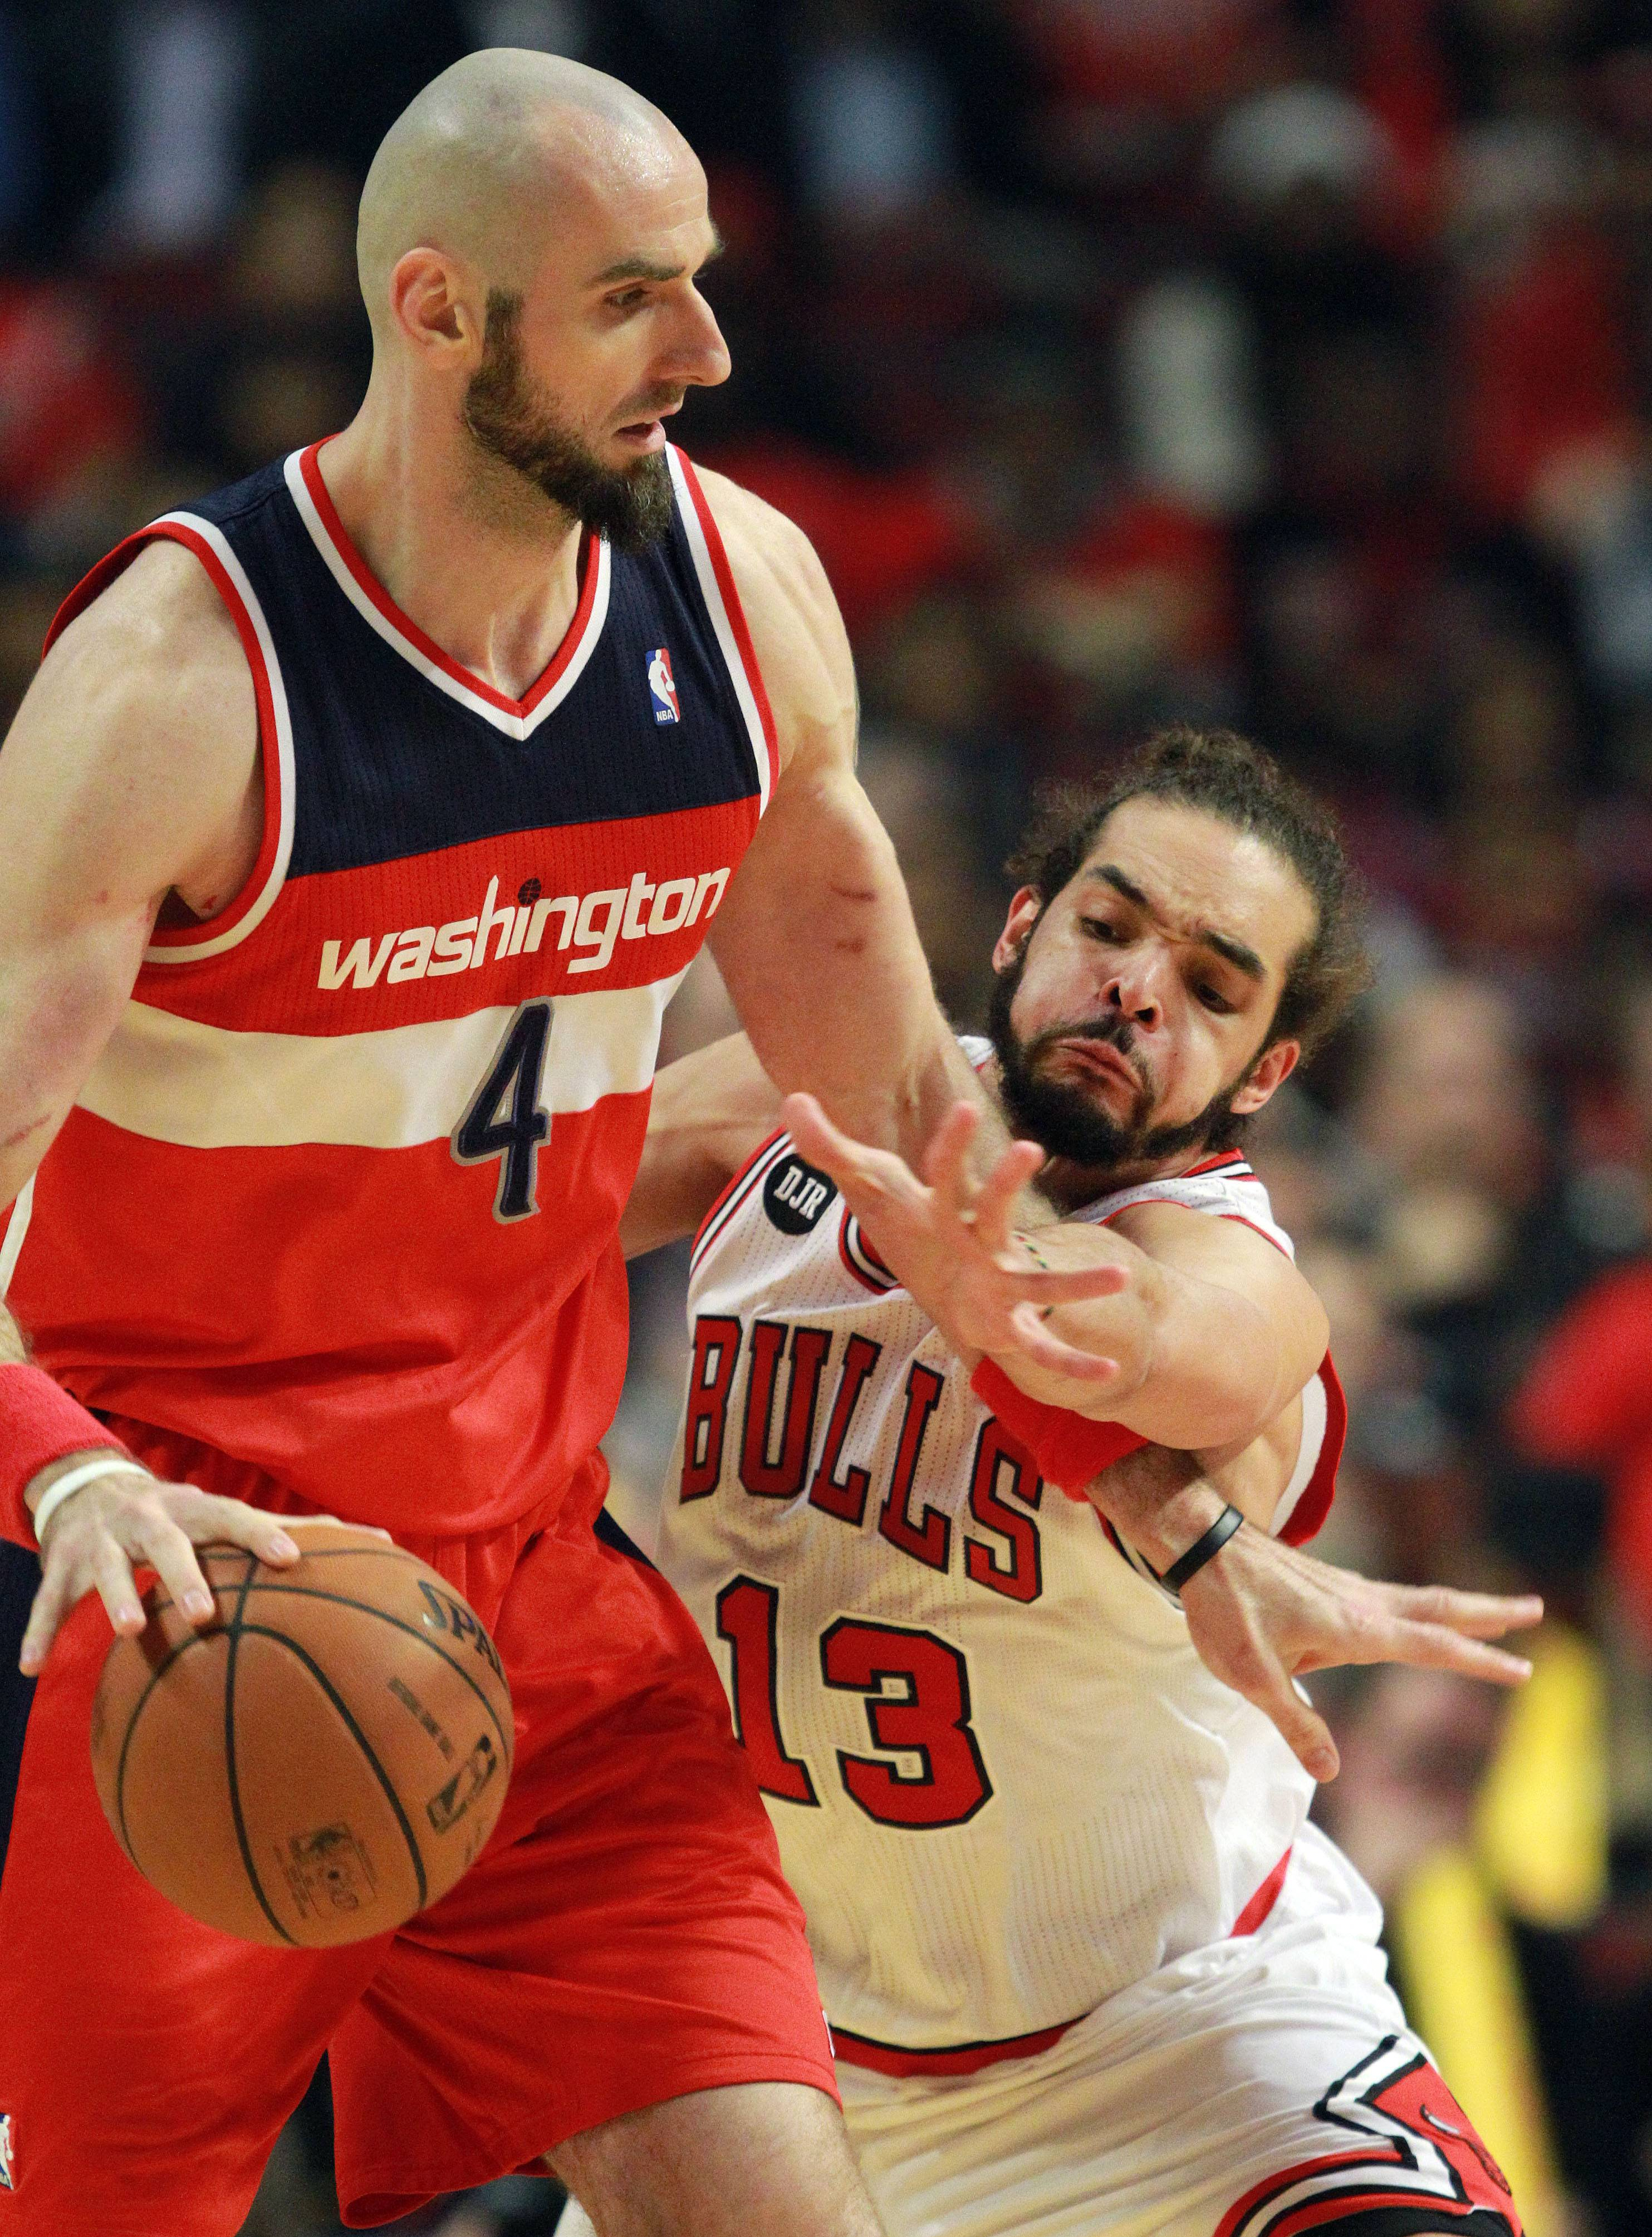 Chicago Bulls center Joakim Noah tries to strip the ball from Washington Wizards center Marcin Gortat.